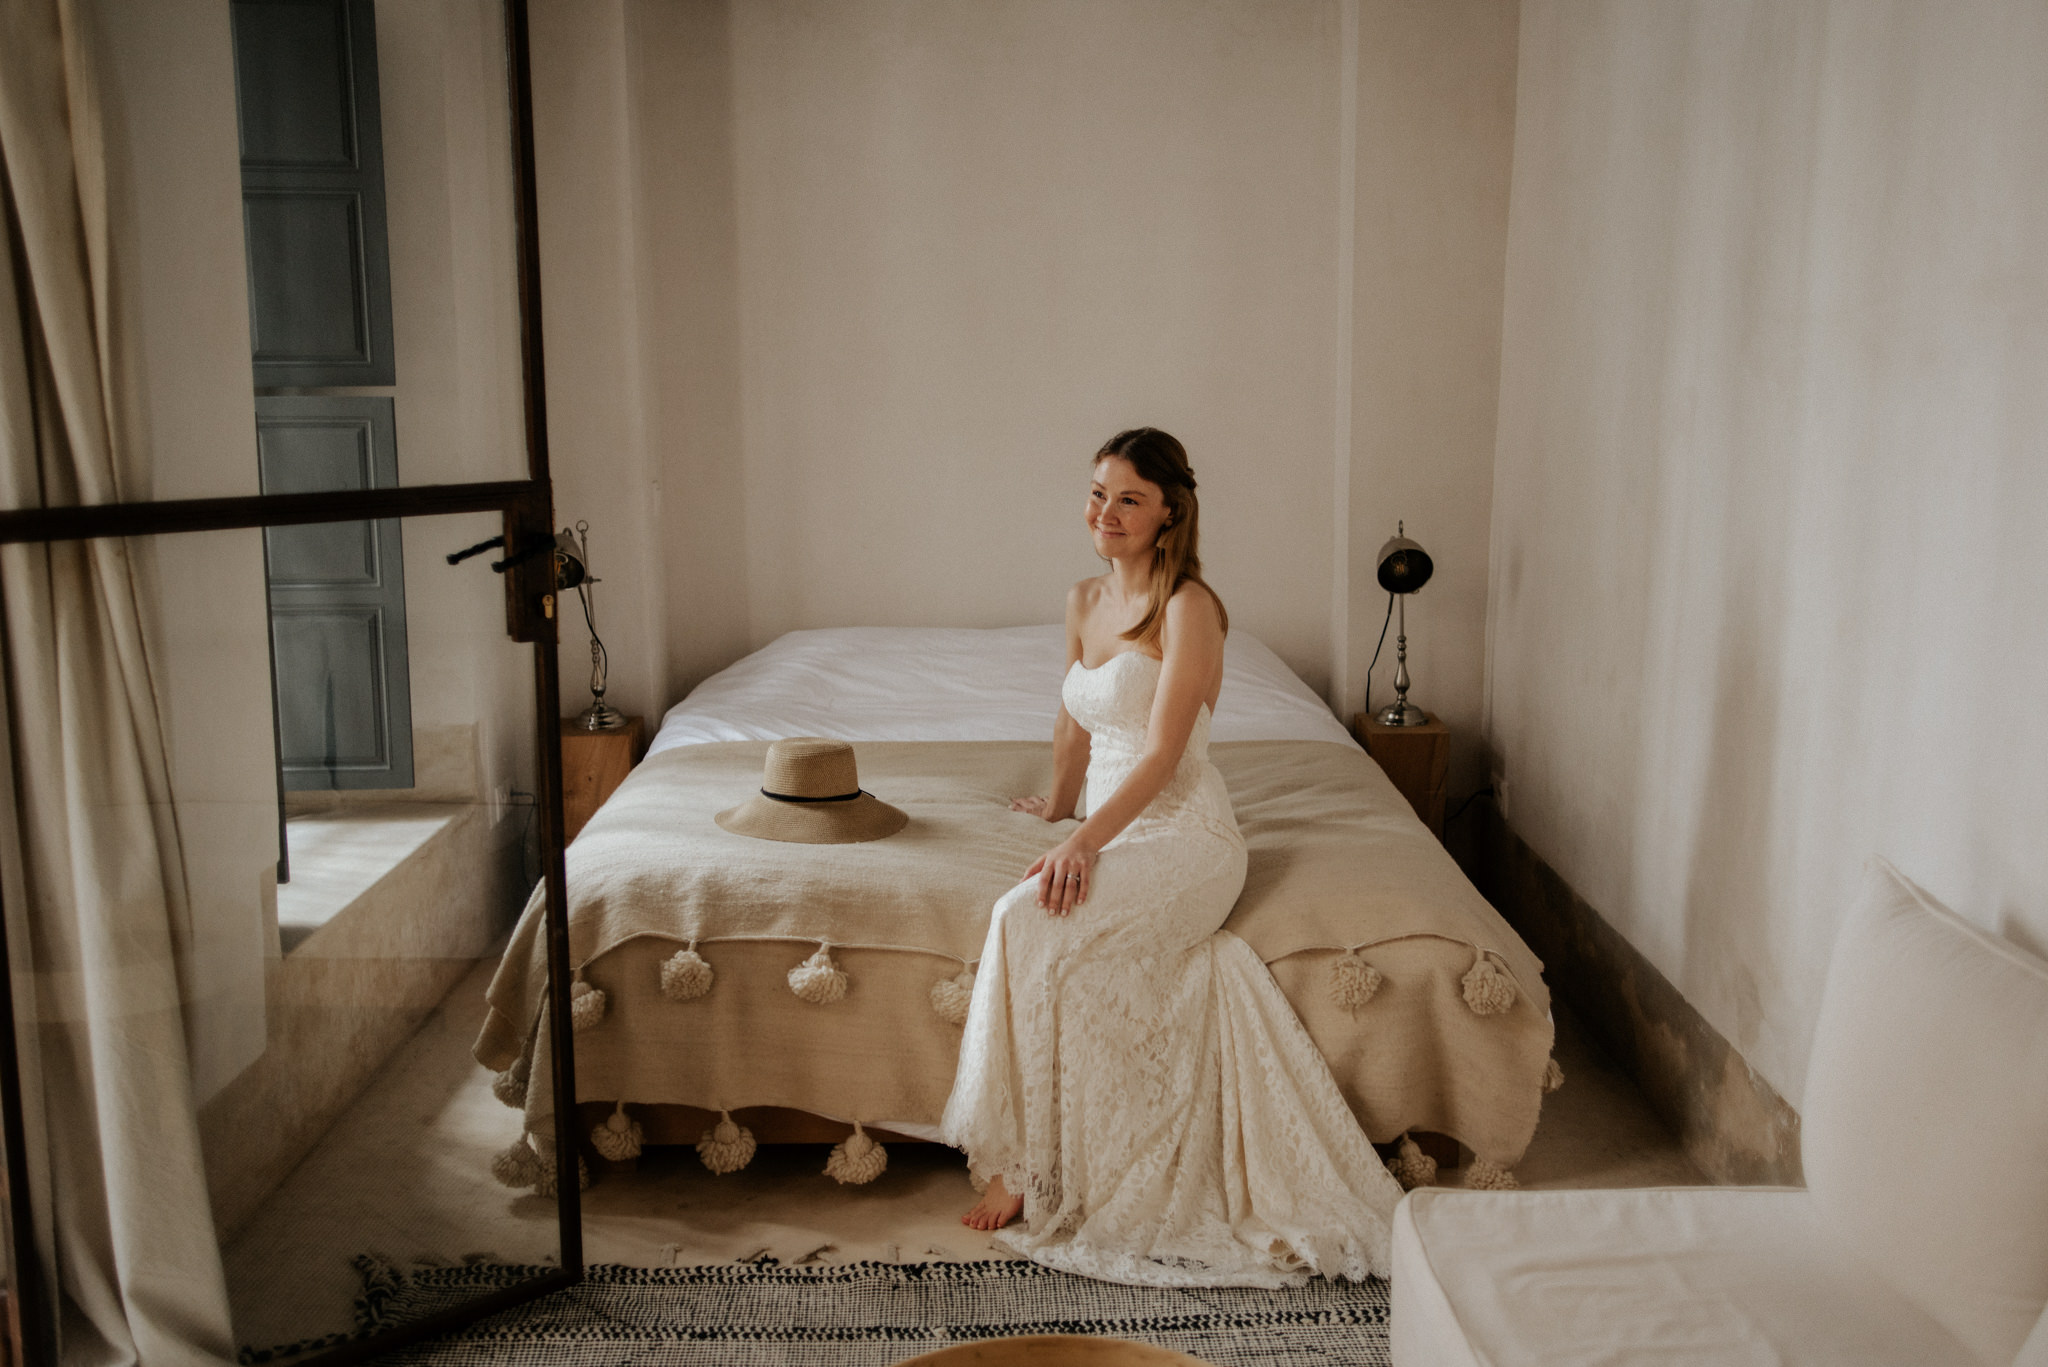 Bride sitting on bed in minimalist bedroom at Riad 42